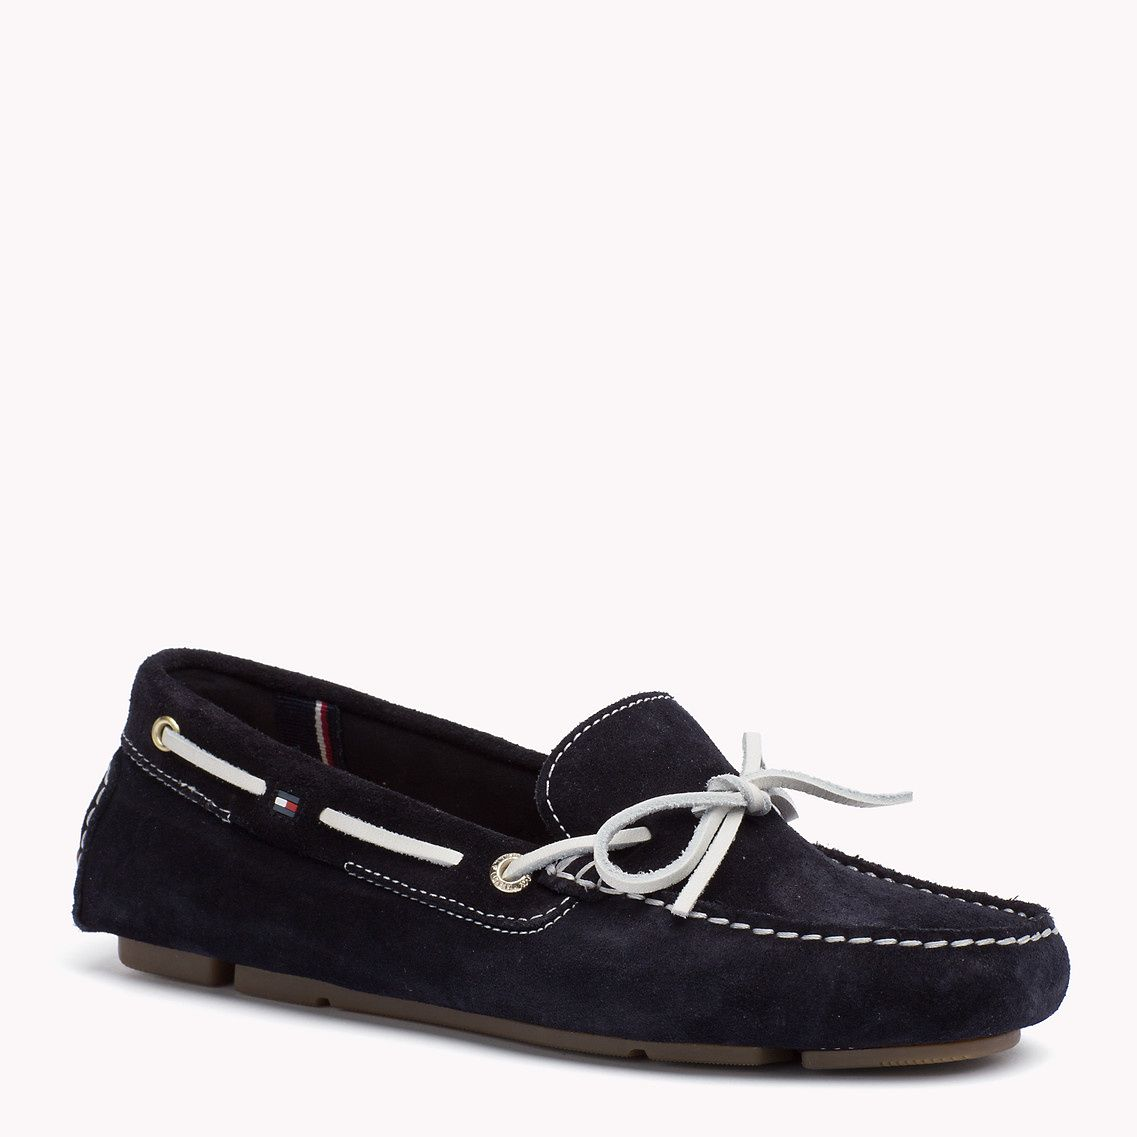 29feebc01b2 Suede Moccasin